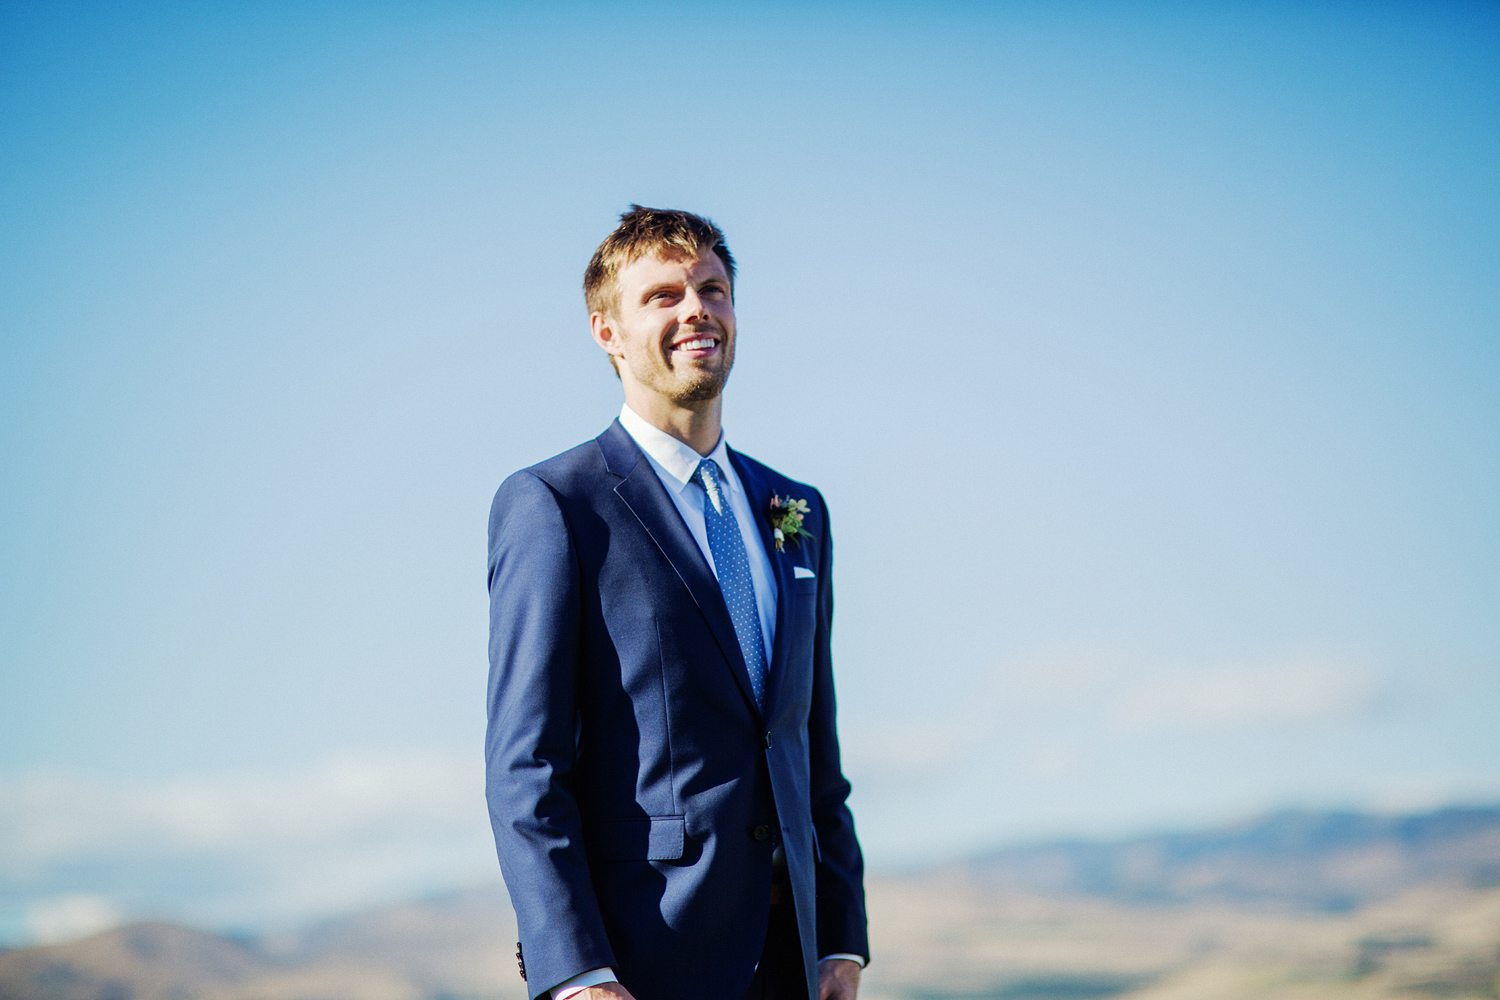 ryan-flynn-seattle-film-photographer-lake-chelan-wedding-0036.JPG